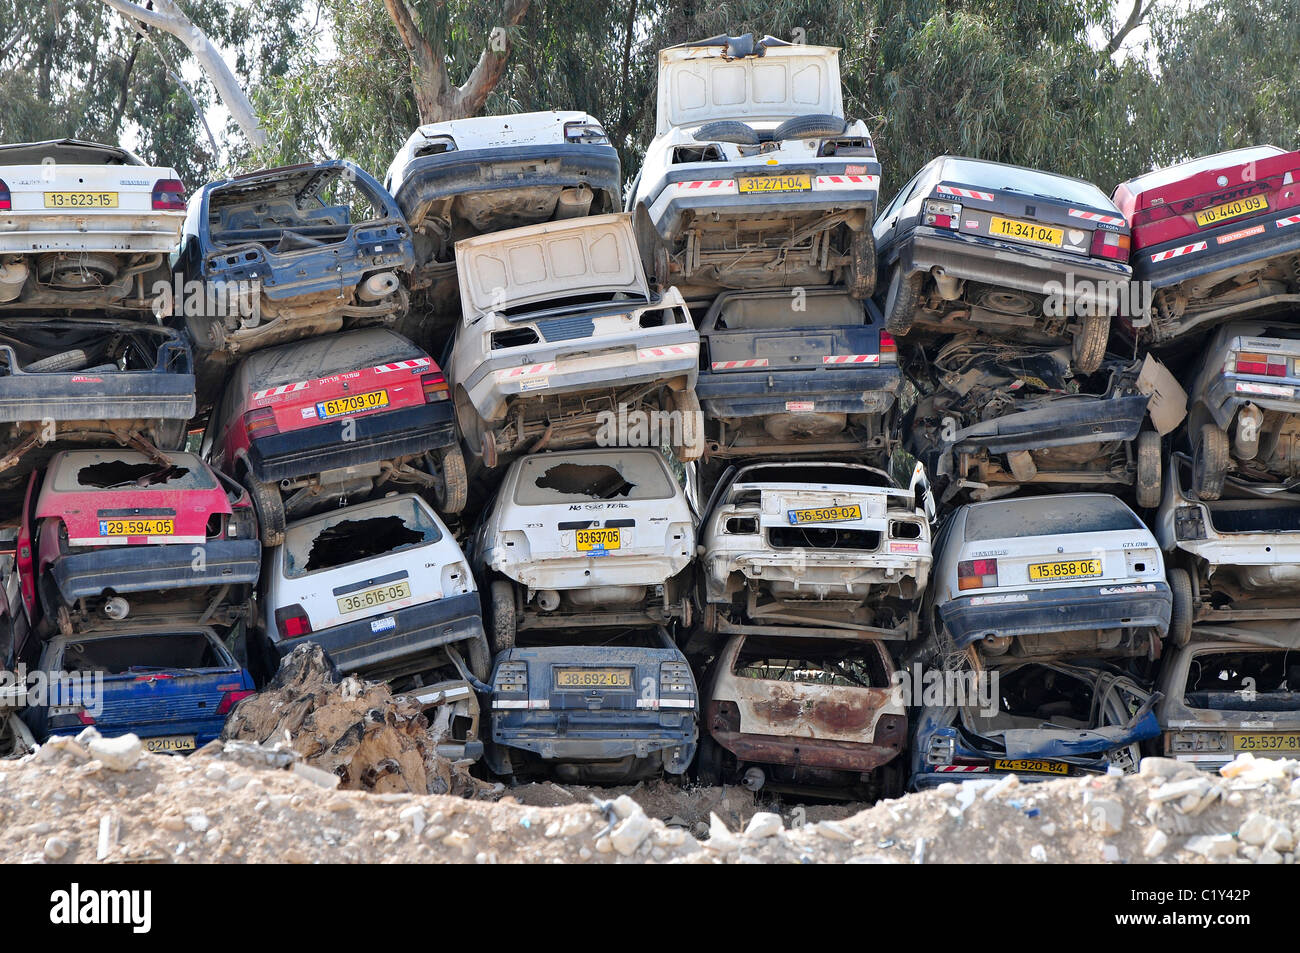 Car scrapyard. Cars piled up in a scrapyard. Photographed ...